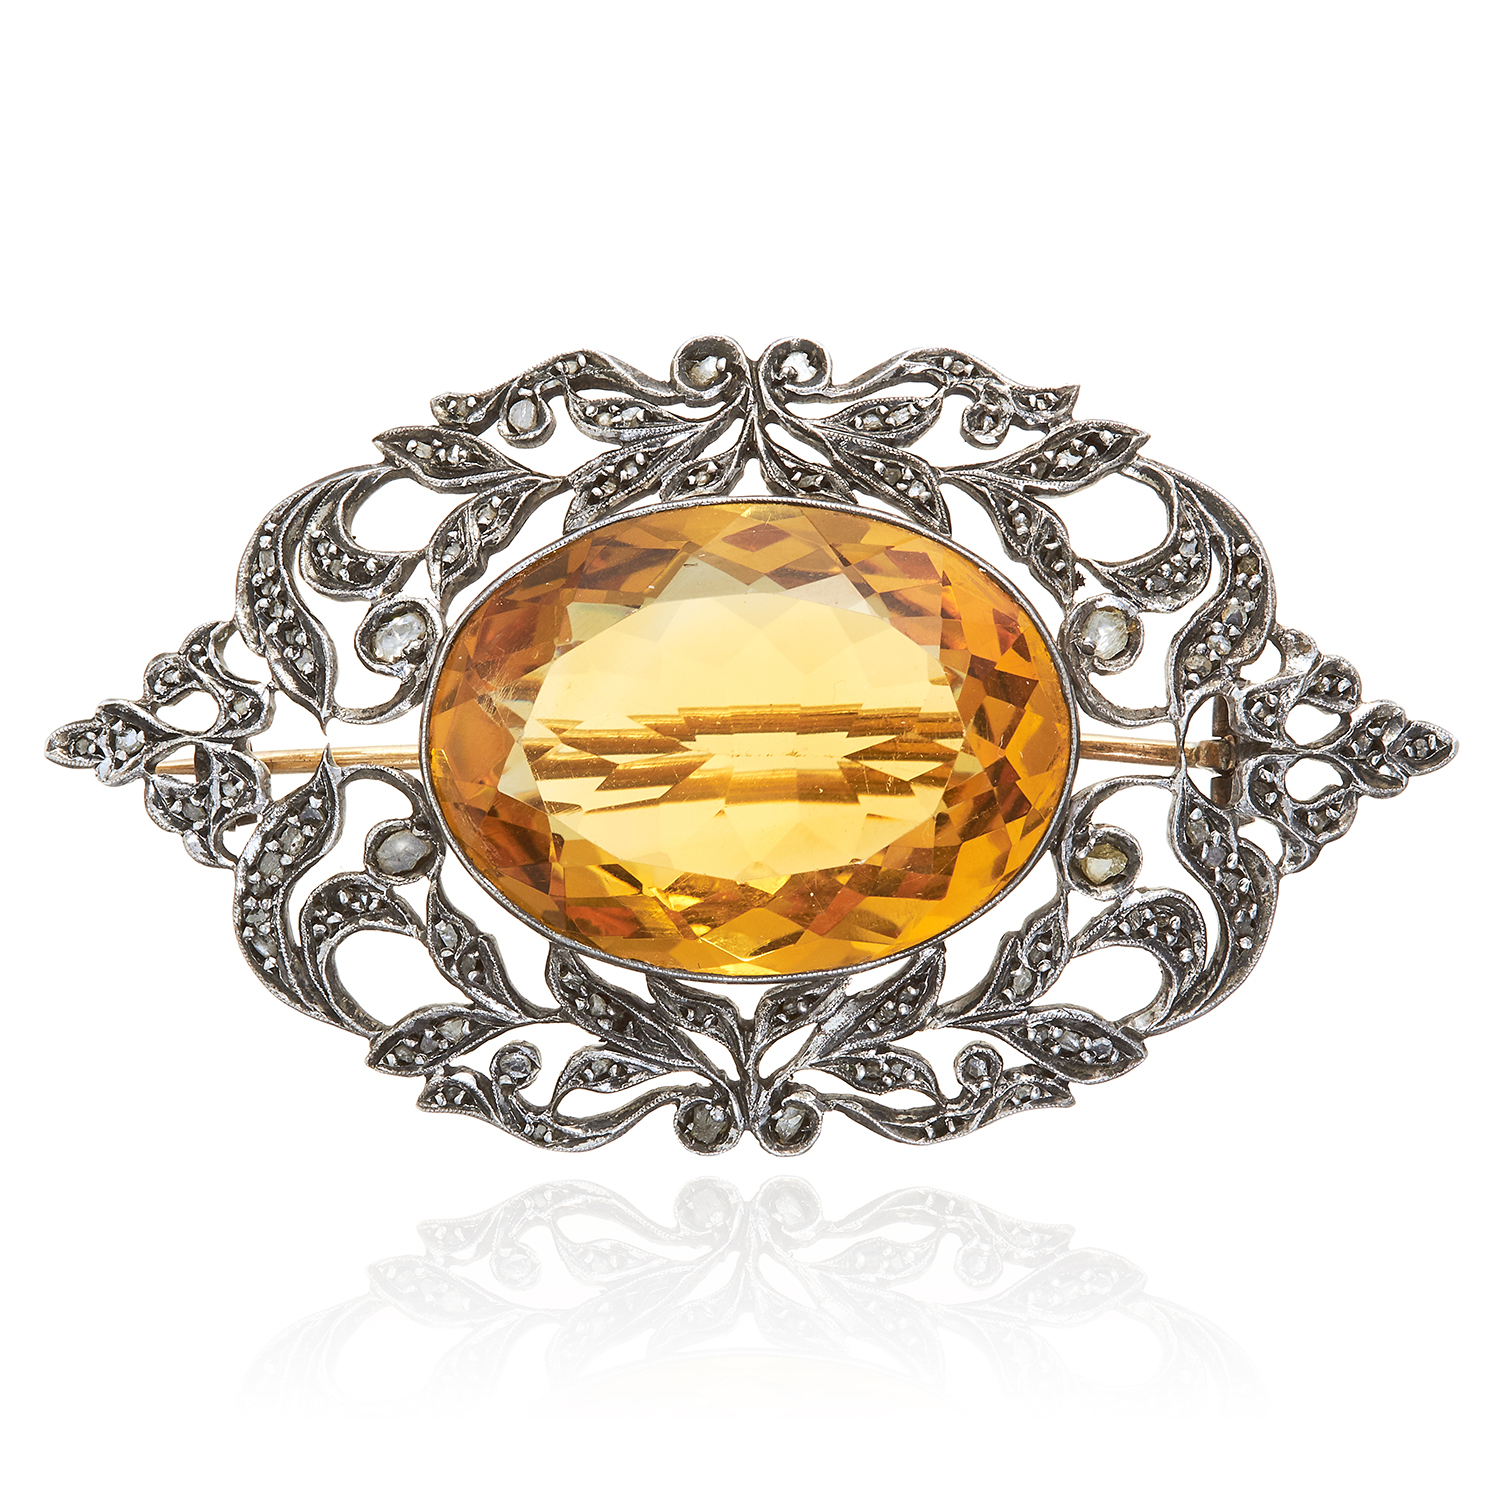 Los 336 - AN ANTIQUE CITRINE AND DIAMOND BROOCH, 19TH CENTURY in yellow gold and silver, the oval cut